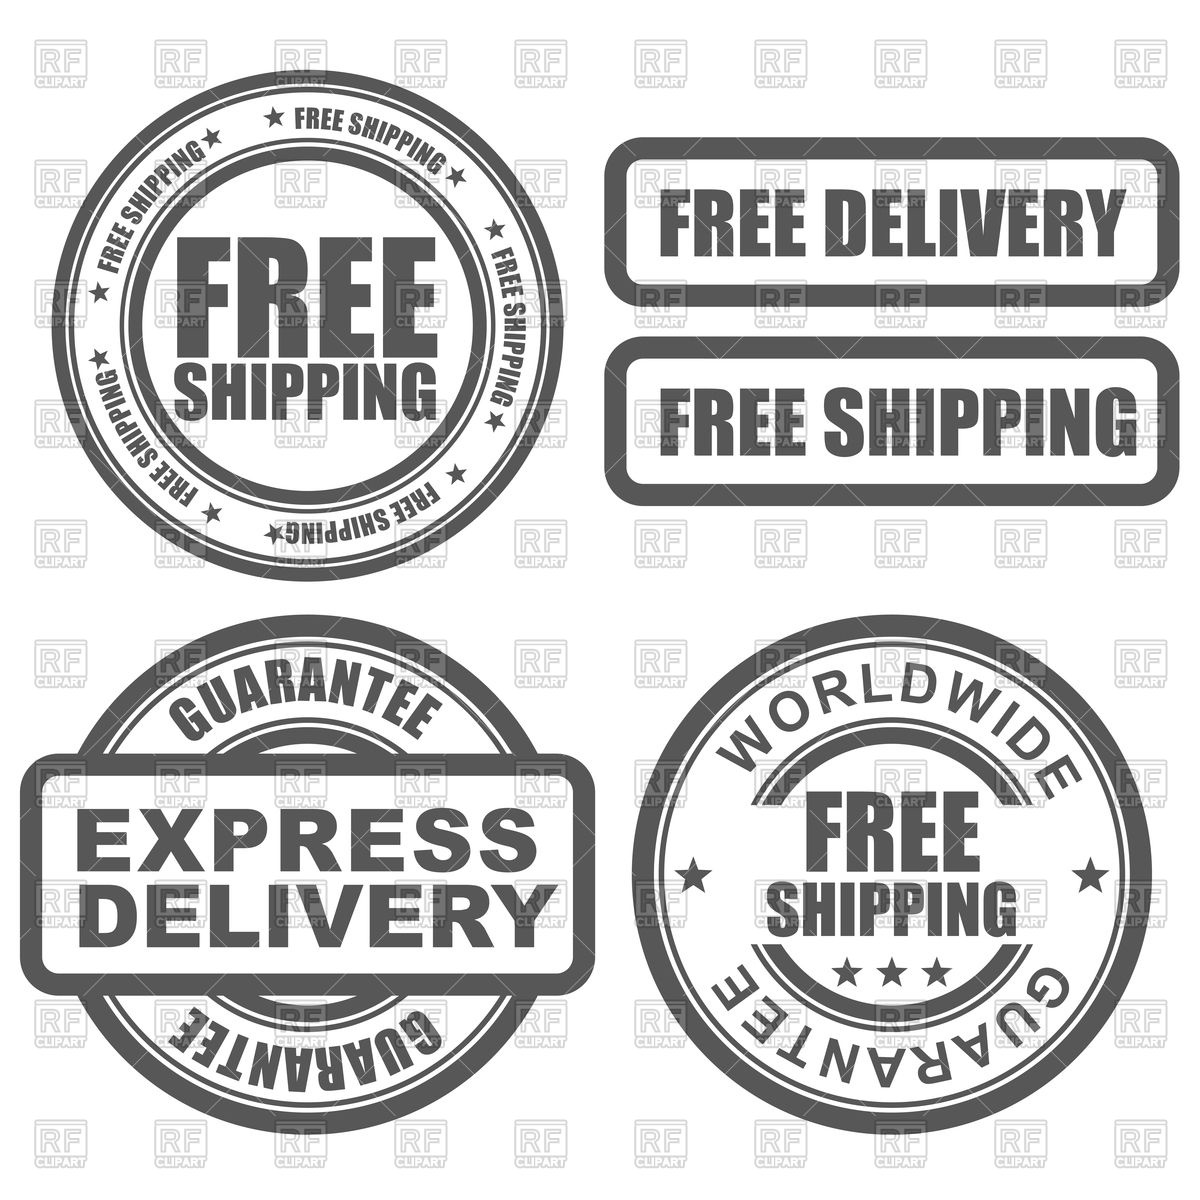 1200x1200 Express Delivery And Free Worldwide Shipping Stamps Vector Image